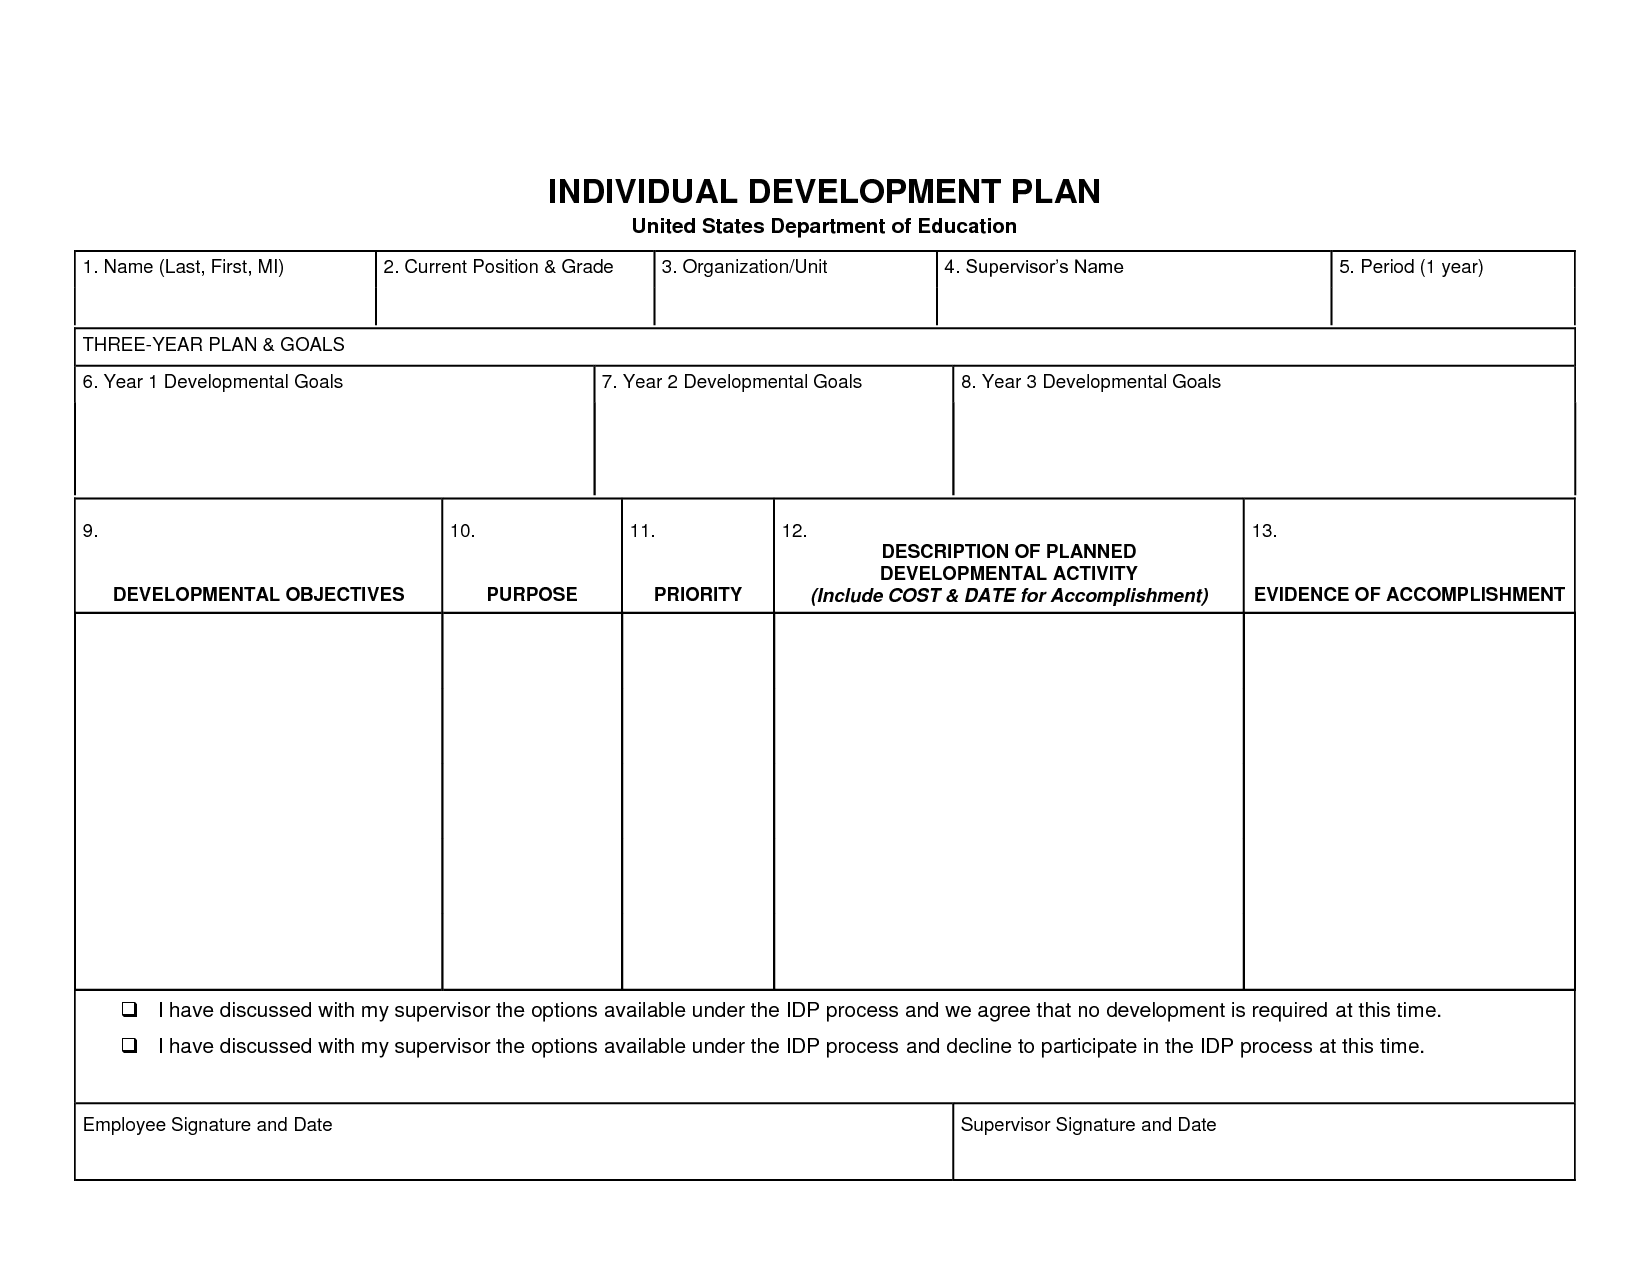 Individual Development Plan Template Word Google Search - Google business plan template